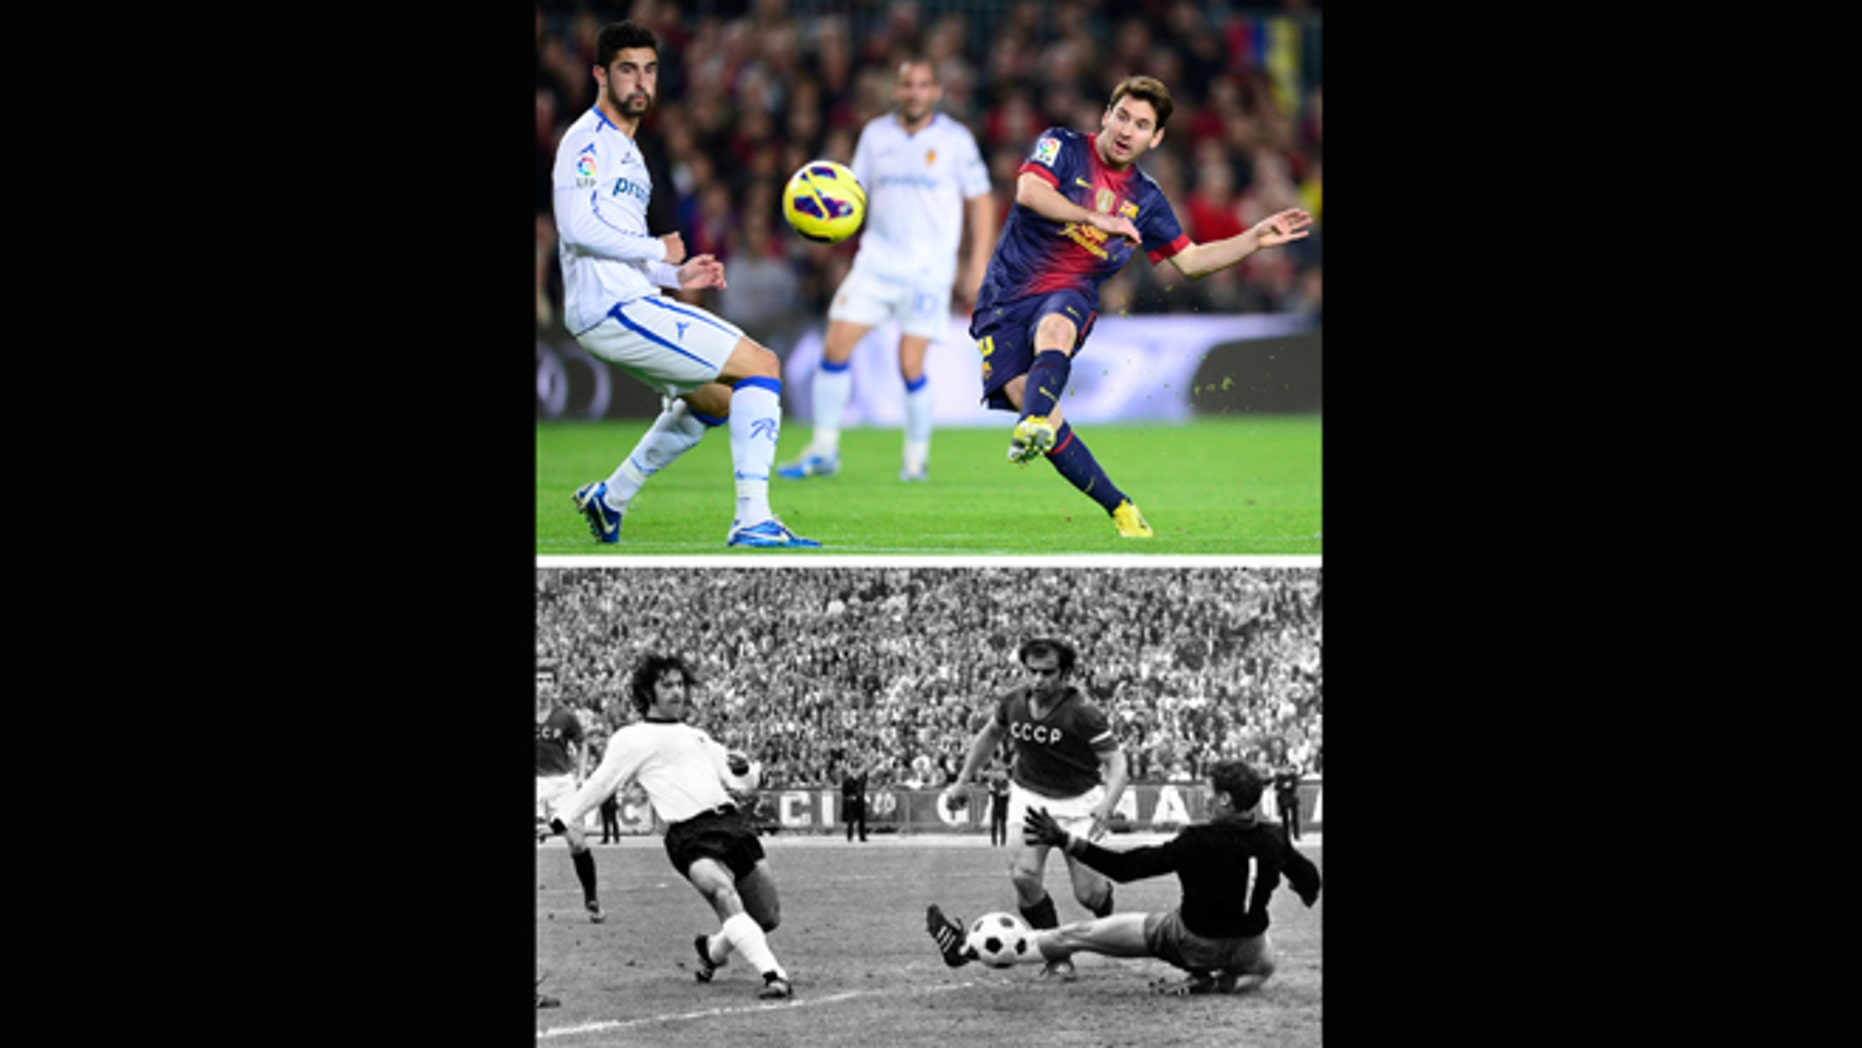 This combo of two file photos shows at top; FC Barcelona's Lionel Messi, from Argentina, scoring his second goal against Zaragoza during a Spanish La Liga soccer match at the Camp Nou stadium in Barcelona, Spain, in a Nov. 17, 2012 file photo, and at bottom; a June 18, 1972 file photo of Gerd Mueller, left, of West Germany, scoring a goal against the Soviet Union in the Heysel Stadium, in Brussels.